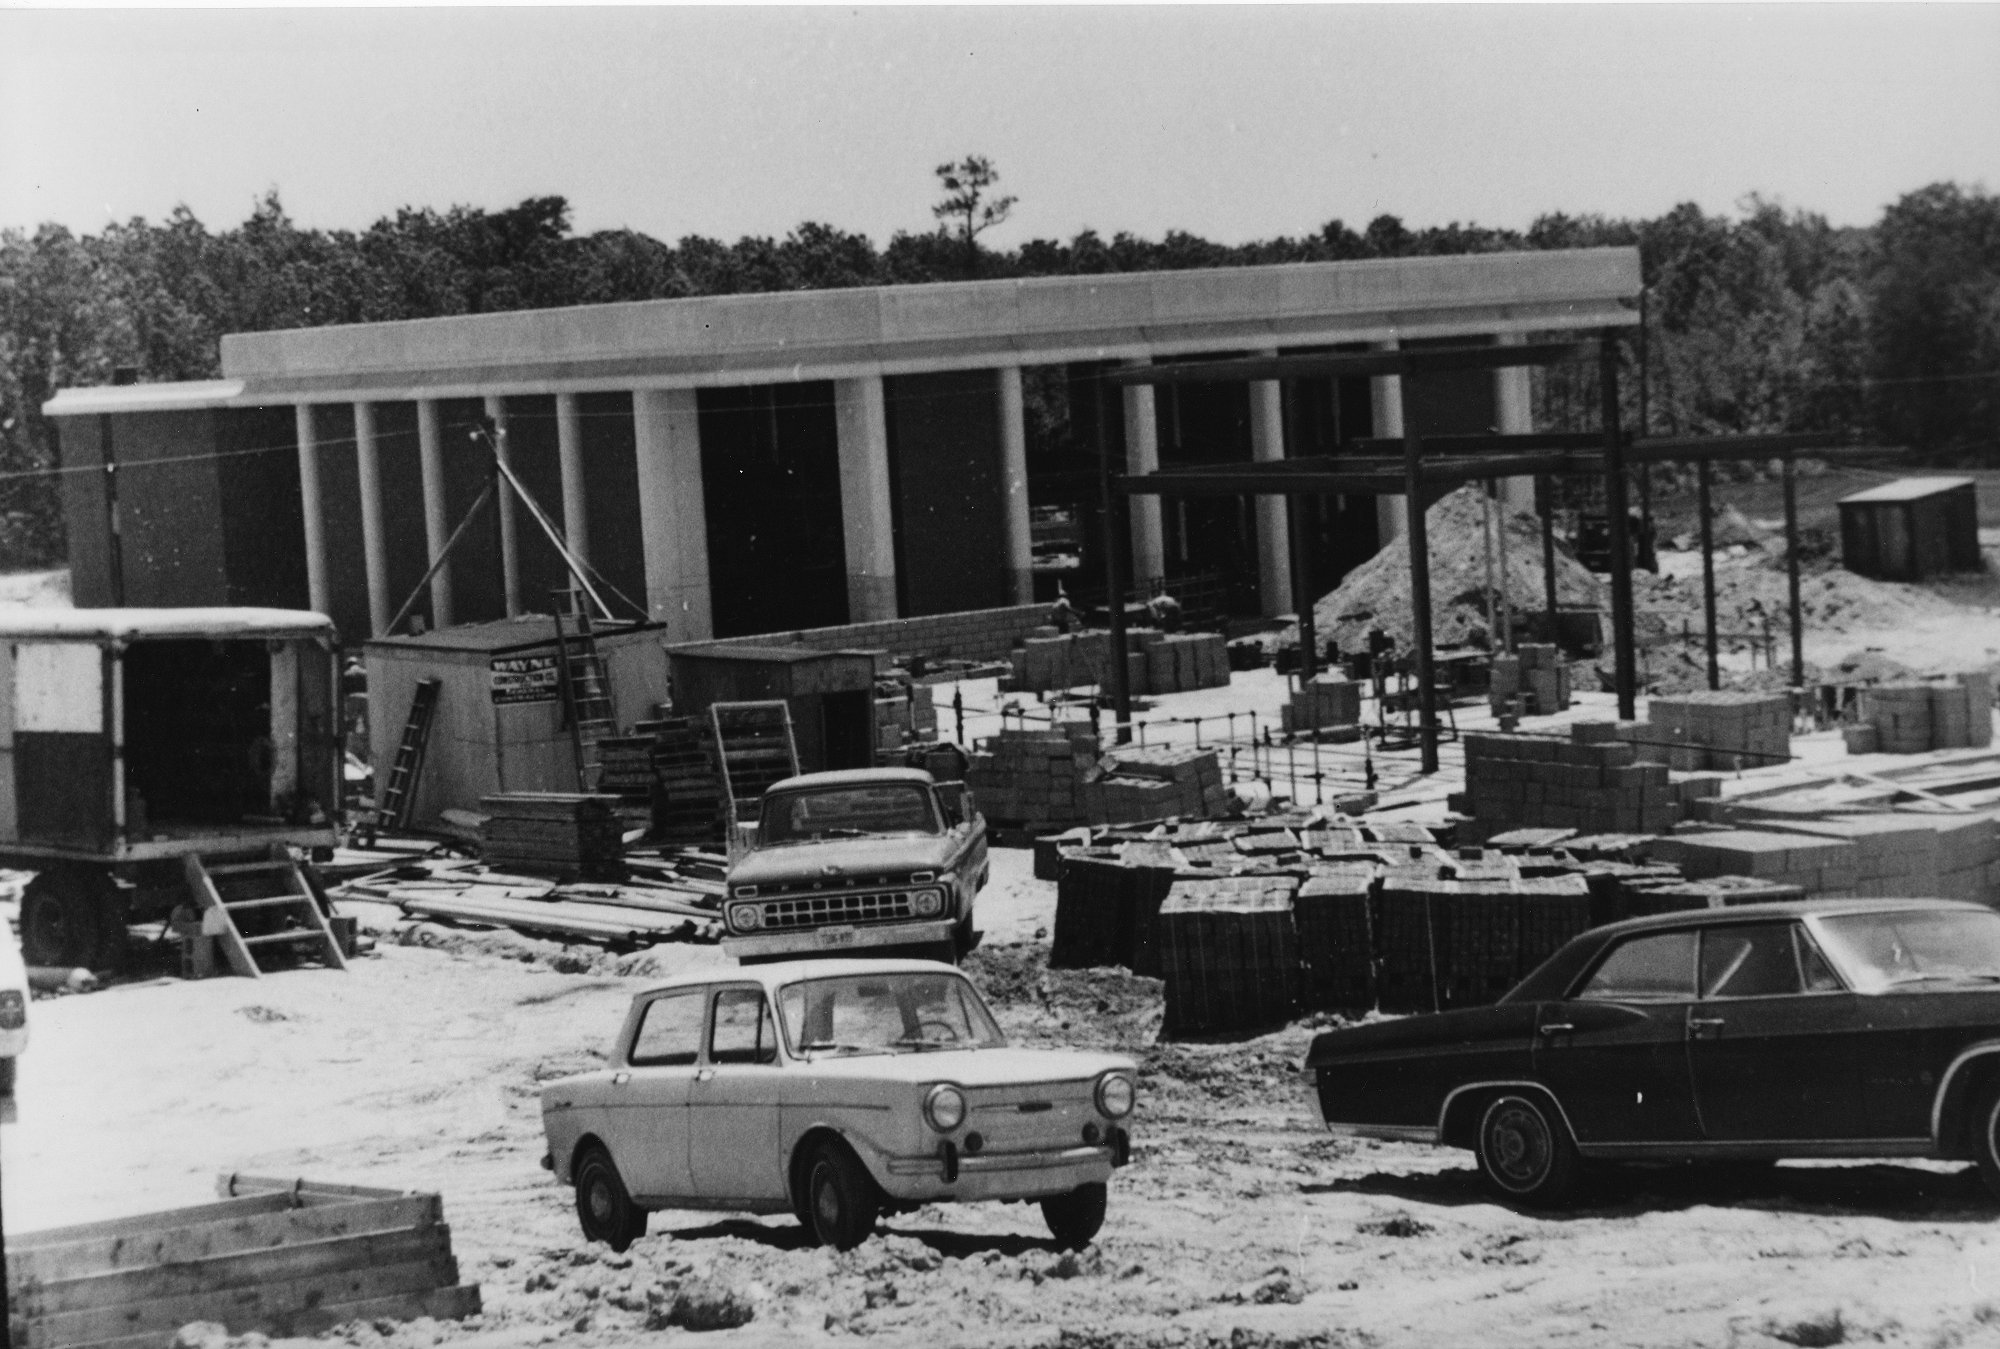 Lecture Hall construction, 1967